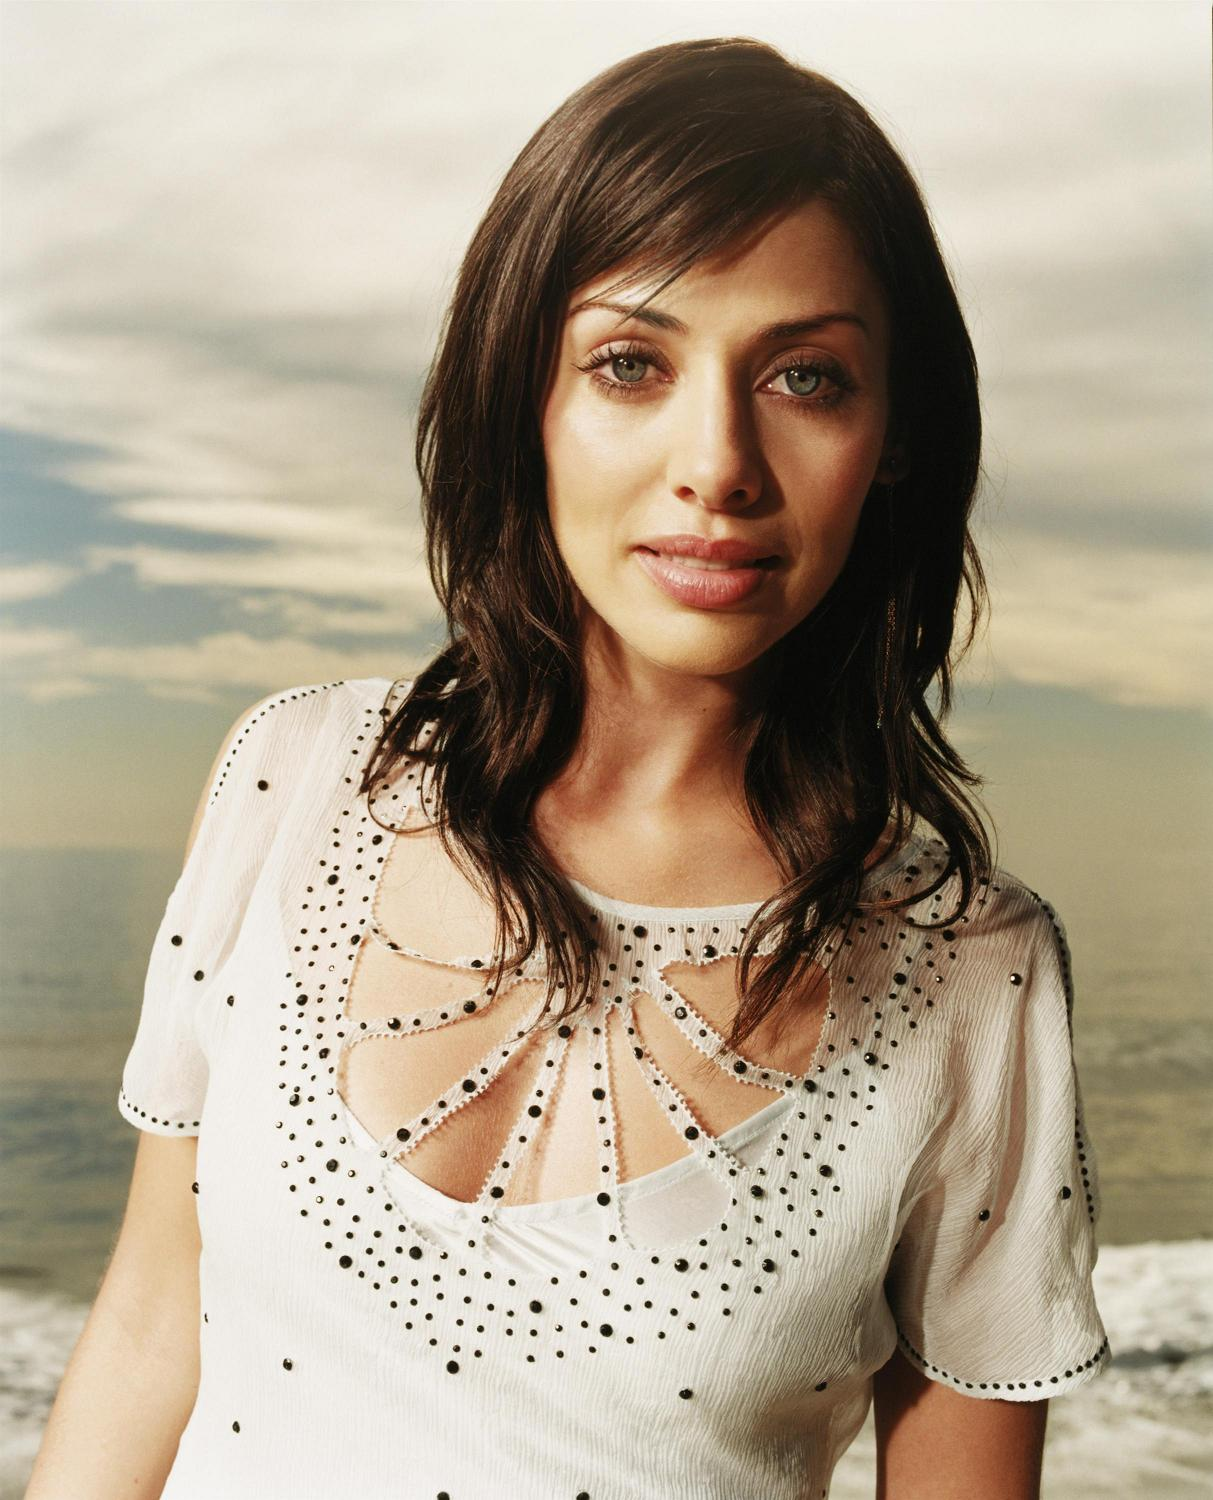 Natalie Imbruglia Height, Weight, Body Measurements